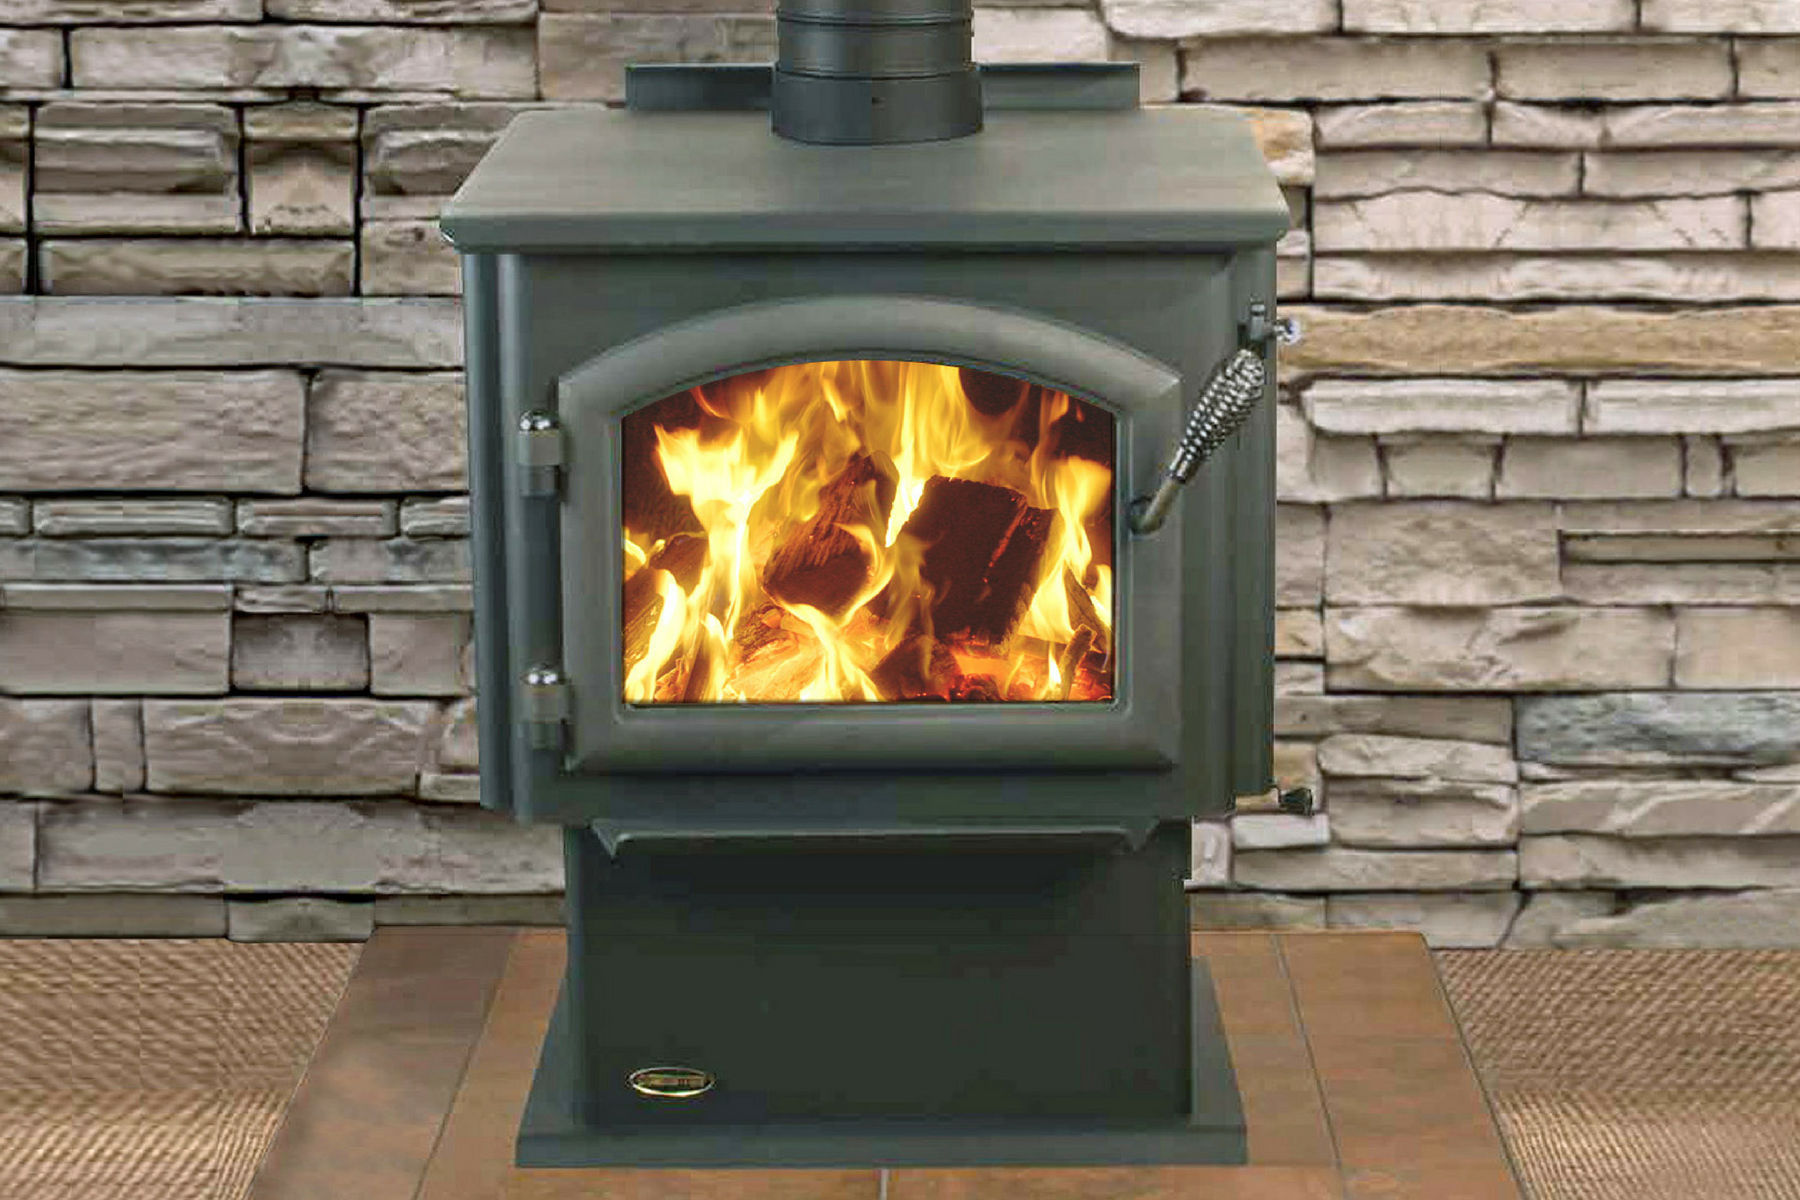 Jetmaster Quadra Fire 2100 Millenium Freestanding Wood Burning Fireplace